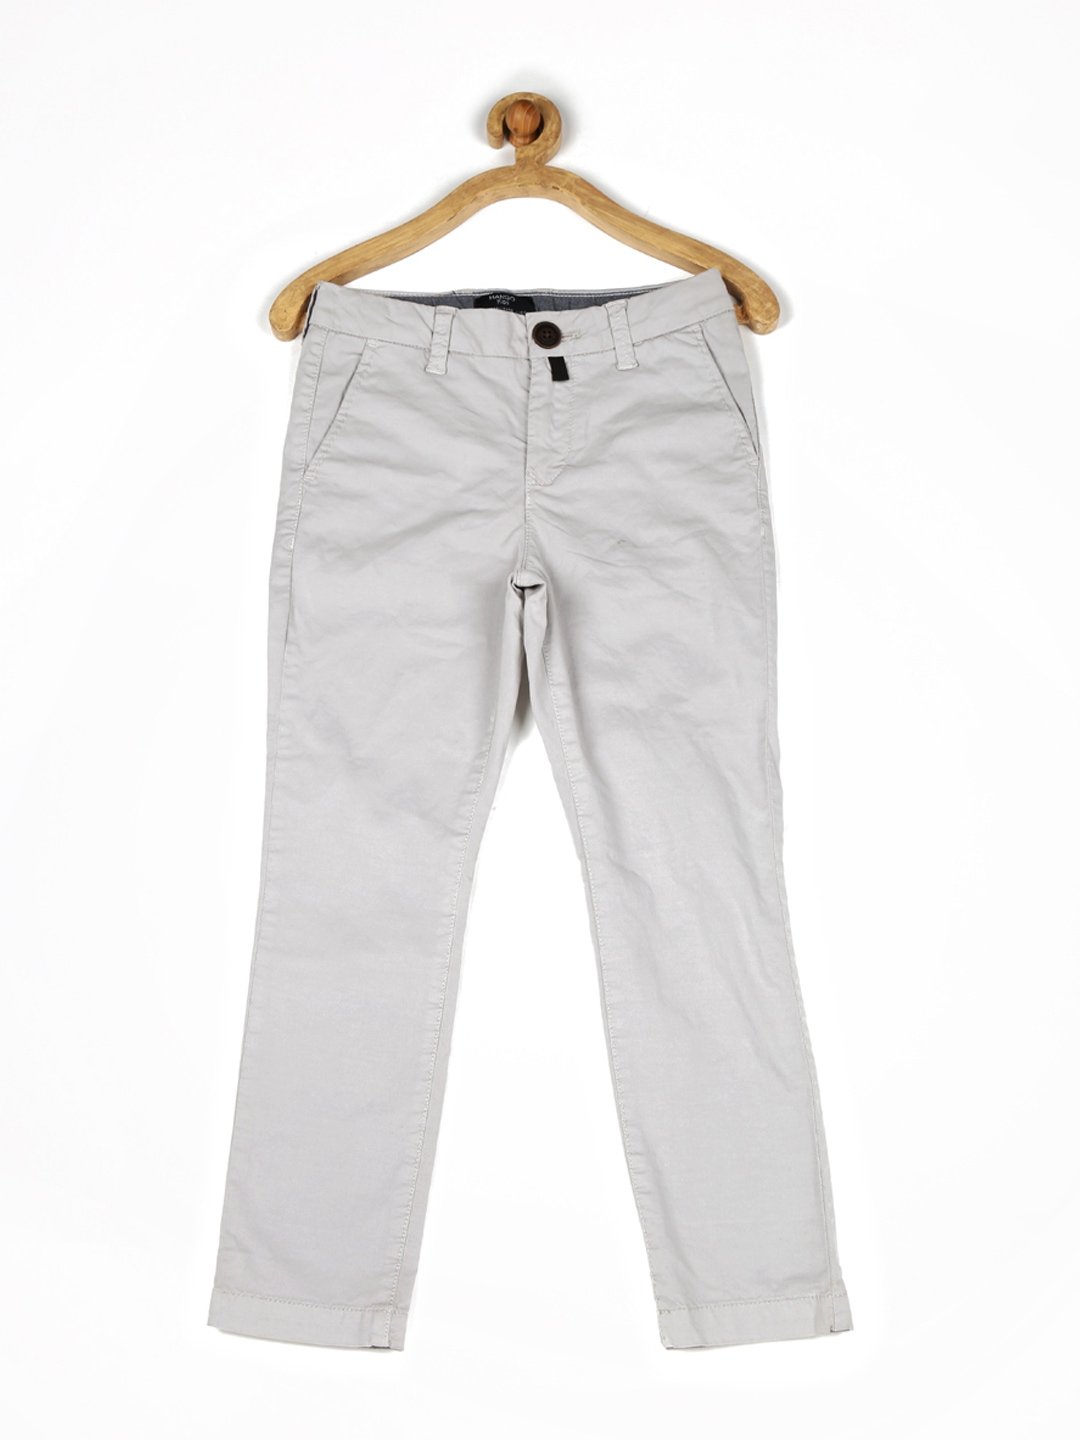 Save up to 70% on dress pants and slacks for boys on zulily. Available in slim, wool-blend and classic pleated pants you little one will be ready for all occasions.